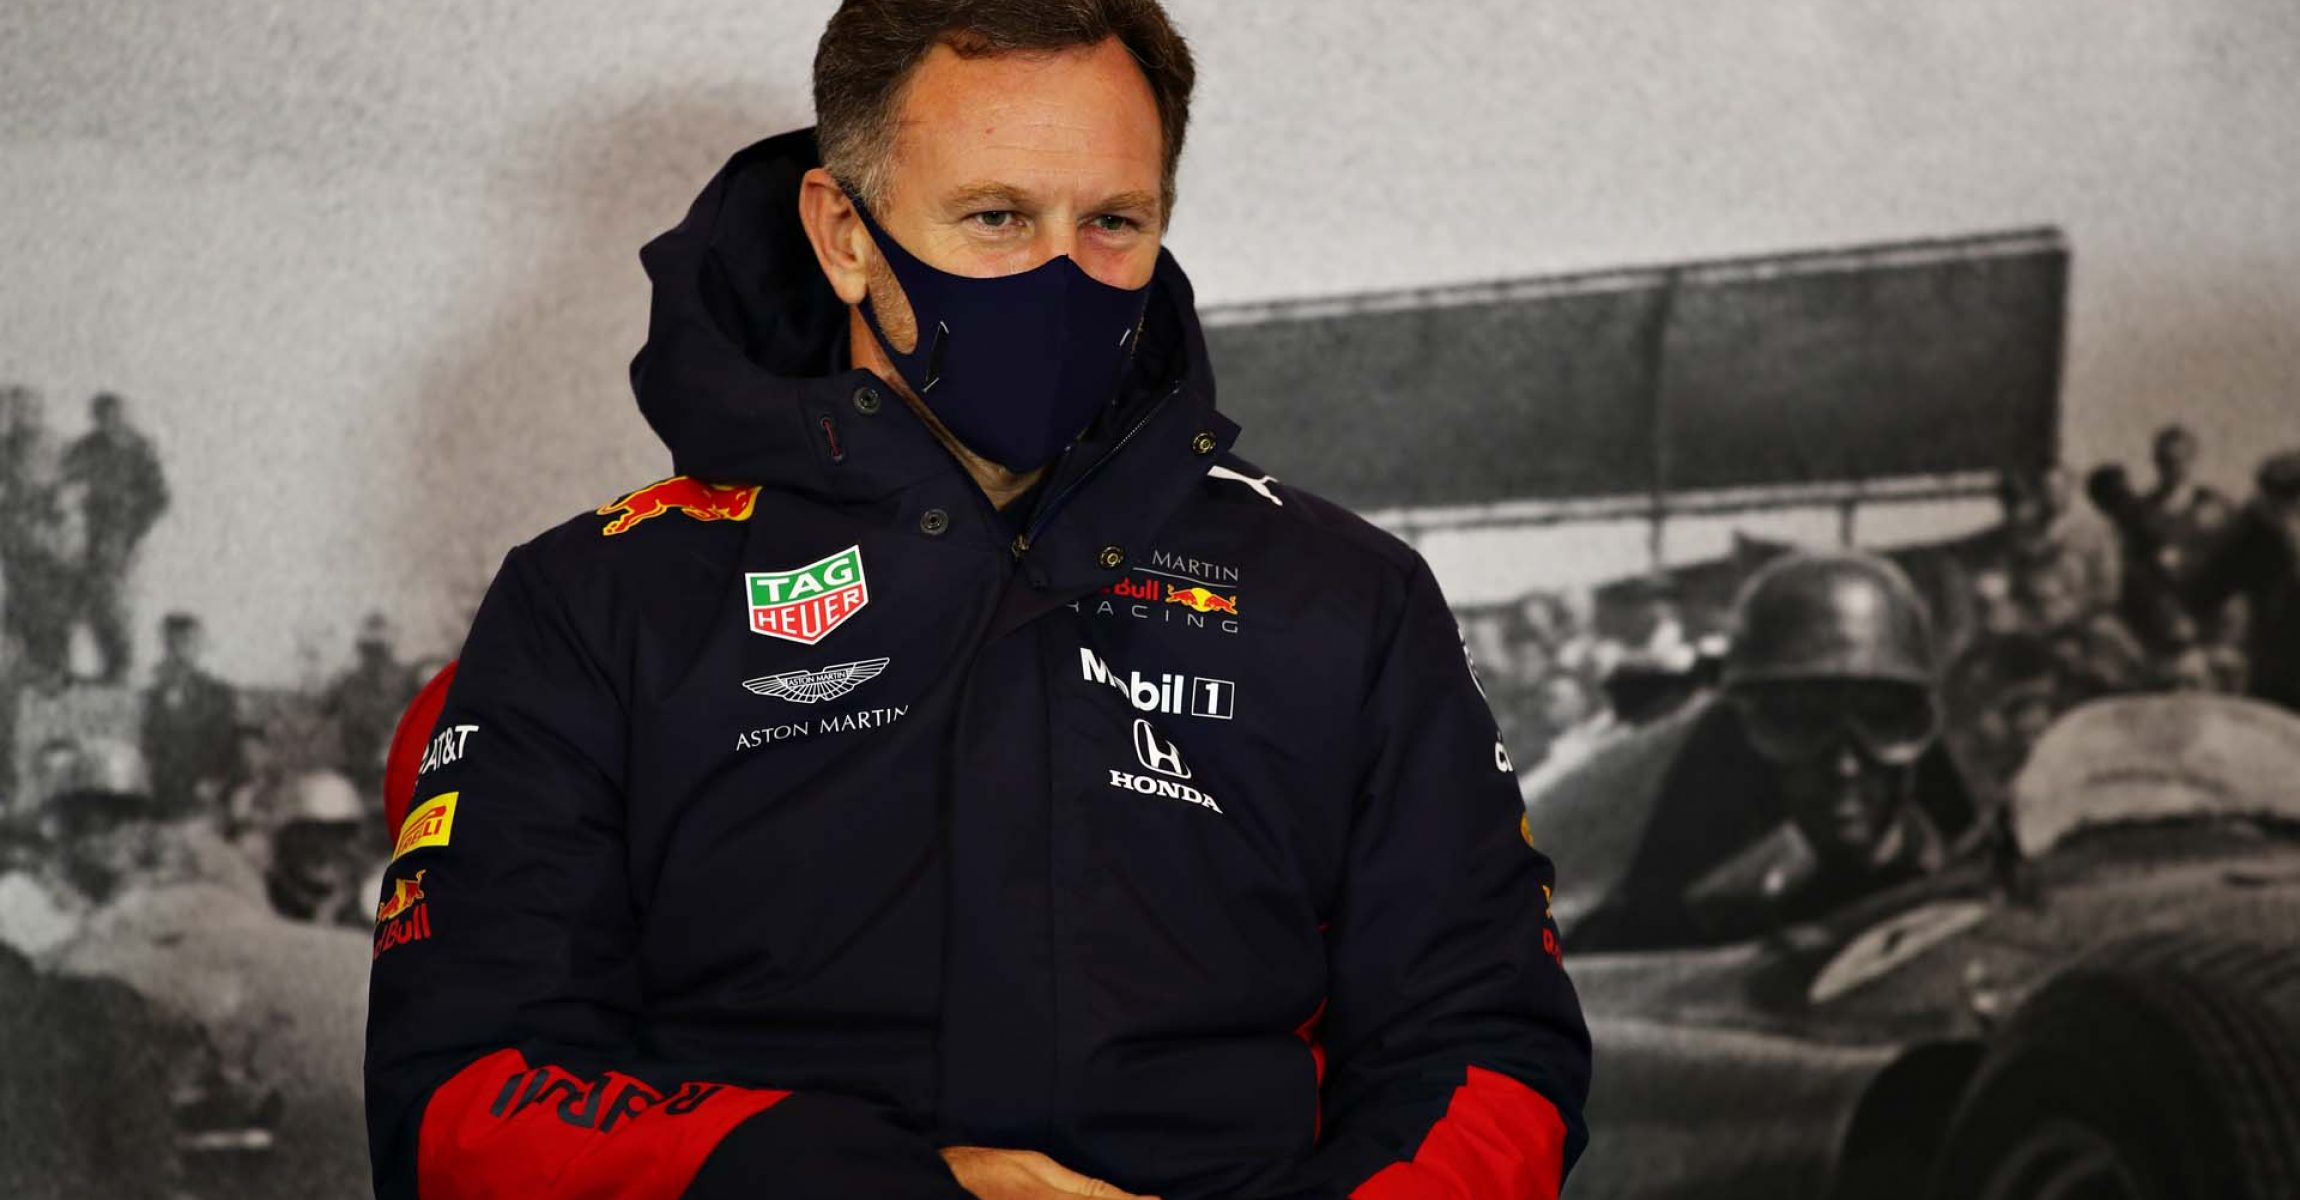 NUERBURG, GERMANY - OCTOBER 09: Red Bull Racing Team Principal Christian Horner talks in the Team Principals Press Conference during practice ahead of the F1 Eifel Grand Prix at Nuerburgring on October 09, 2020 in Nuerburg, Germany. (Photo by Joe Portlock/Getty Images)